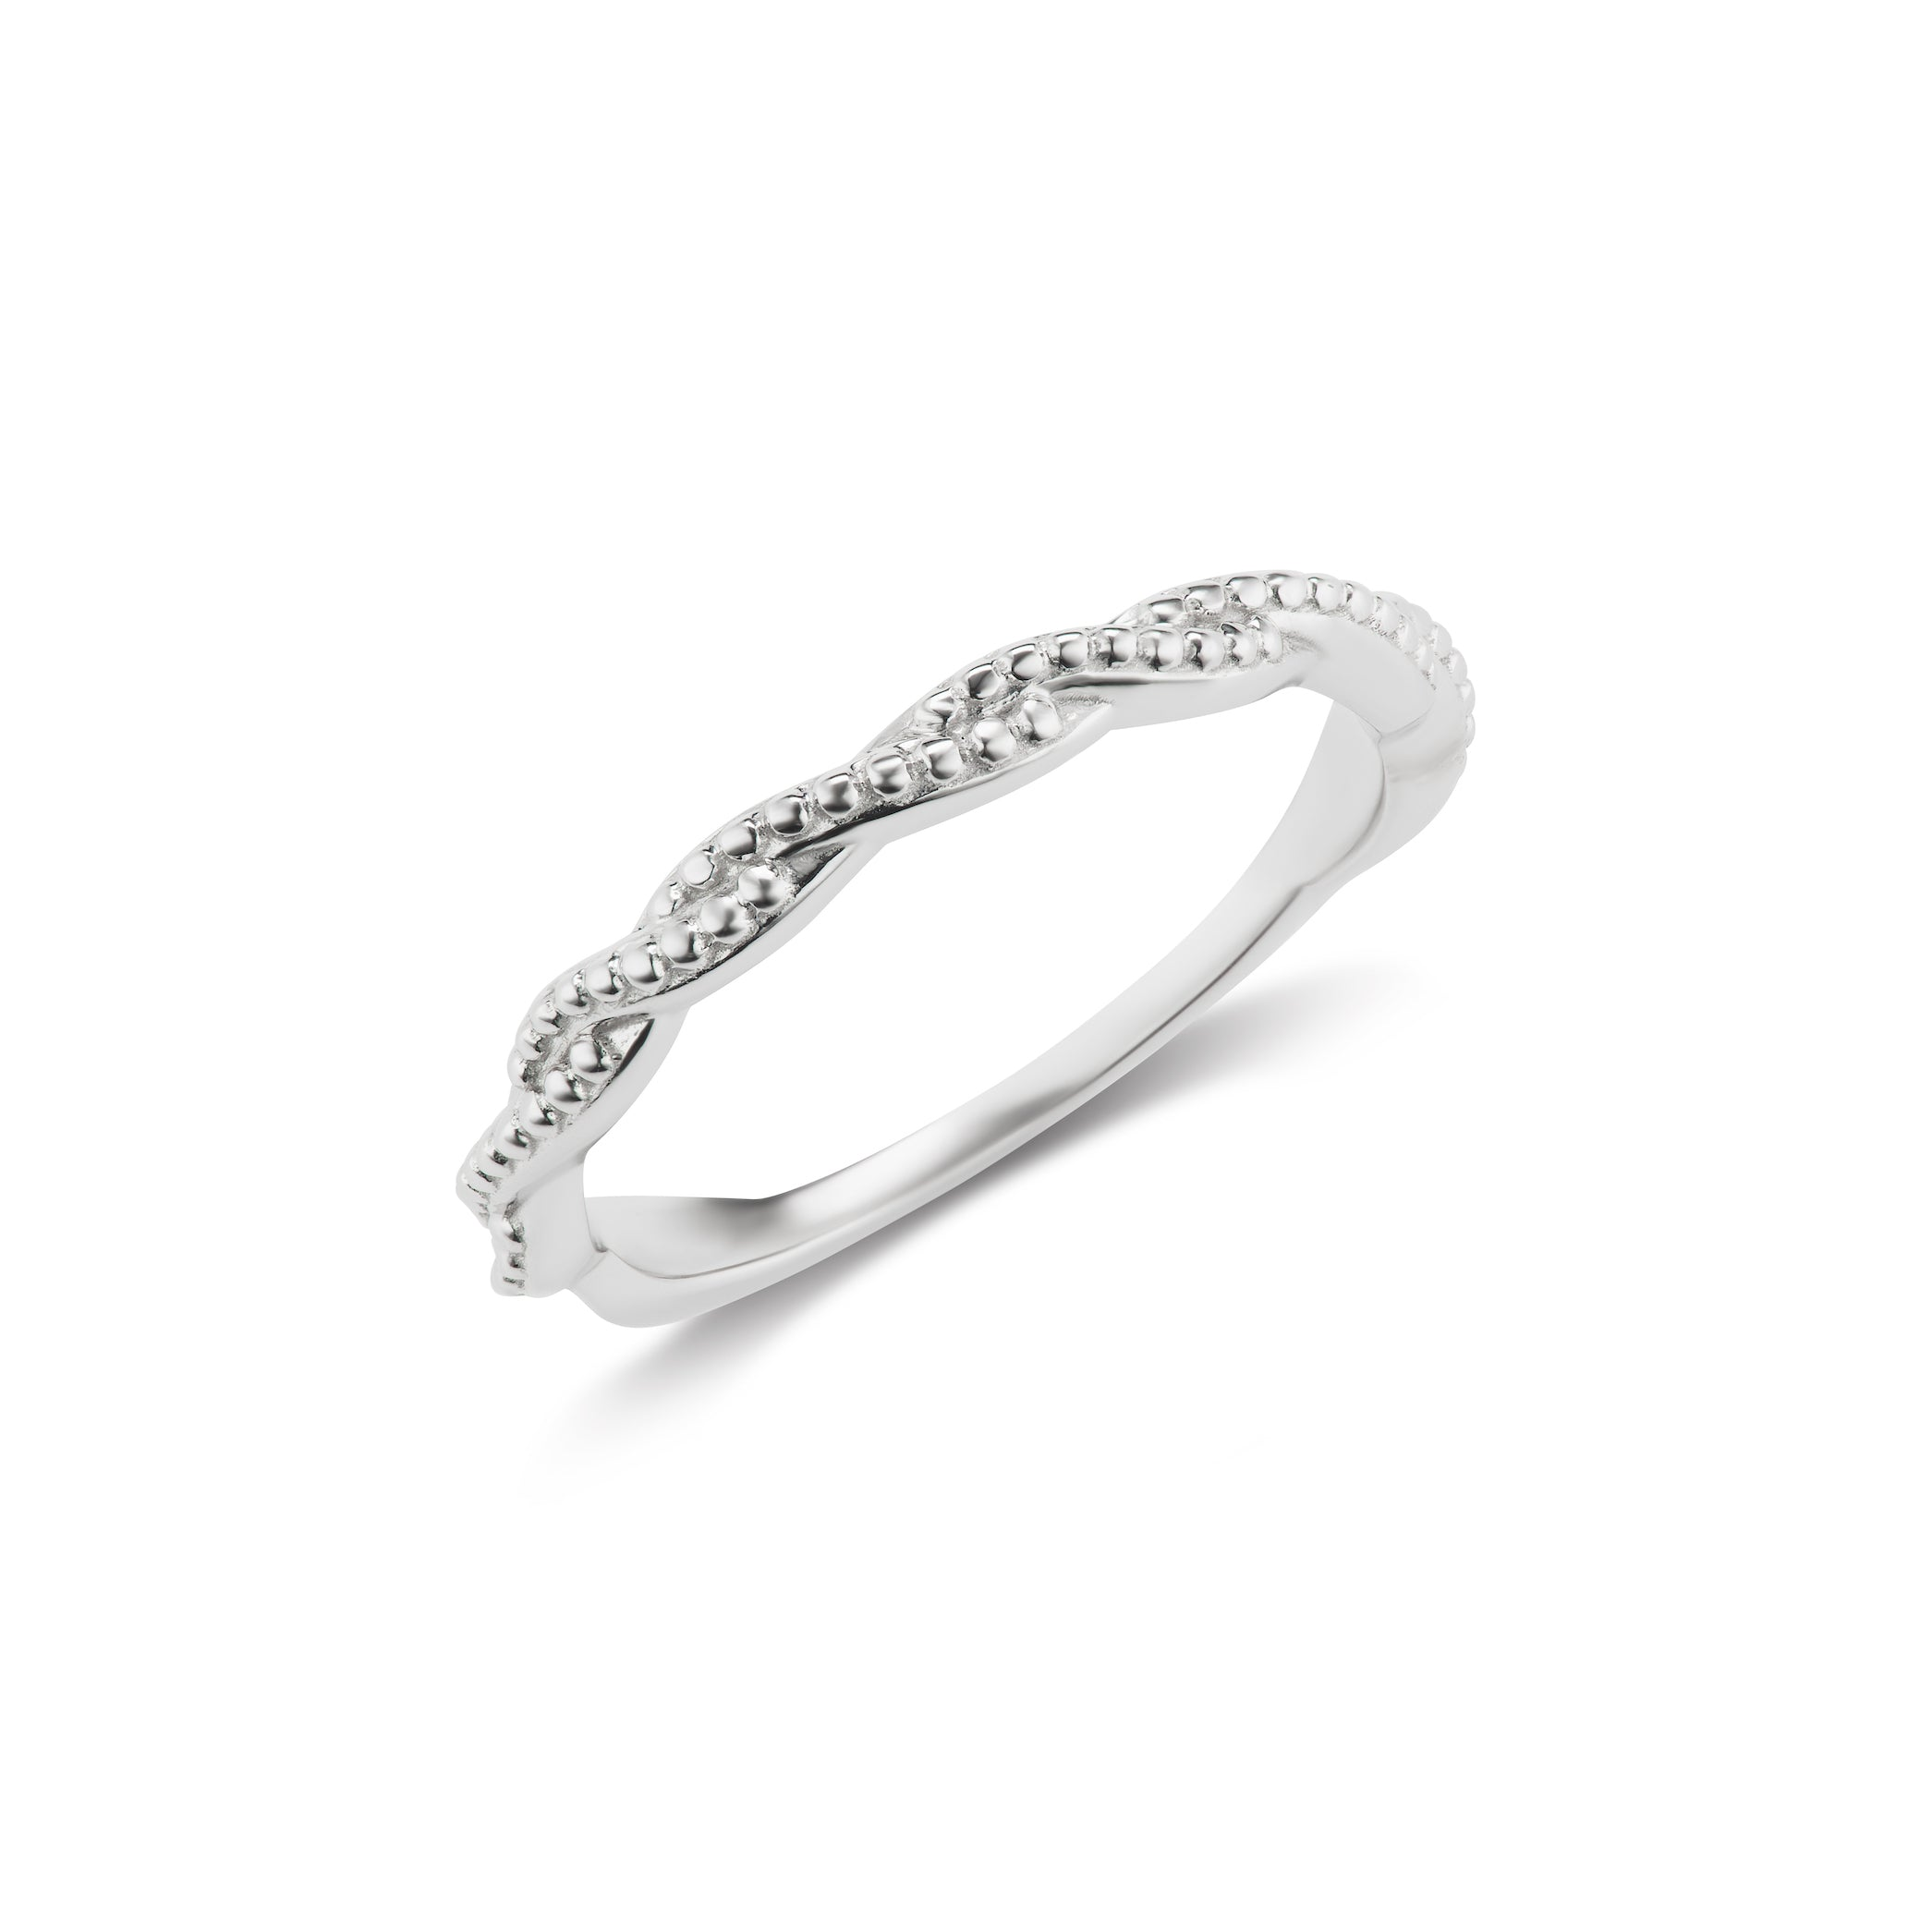 Twist Band Ring in White Gold